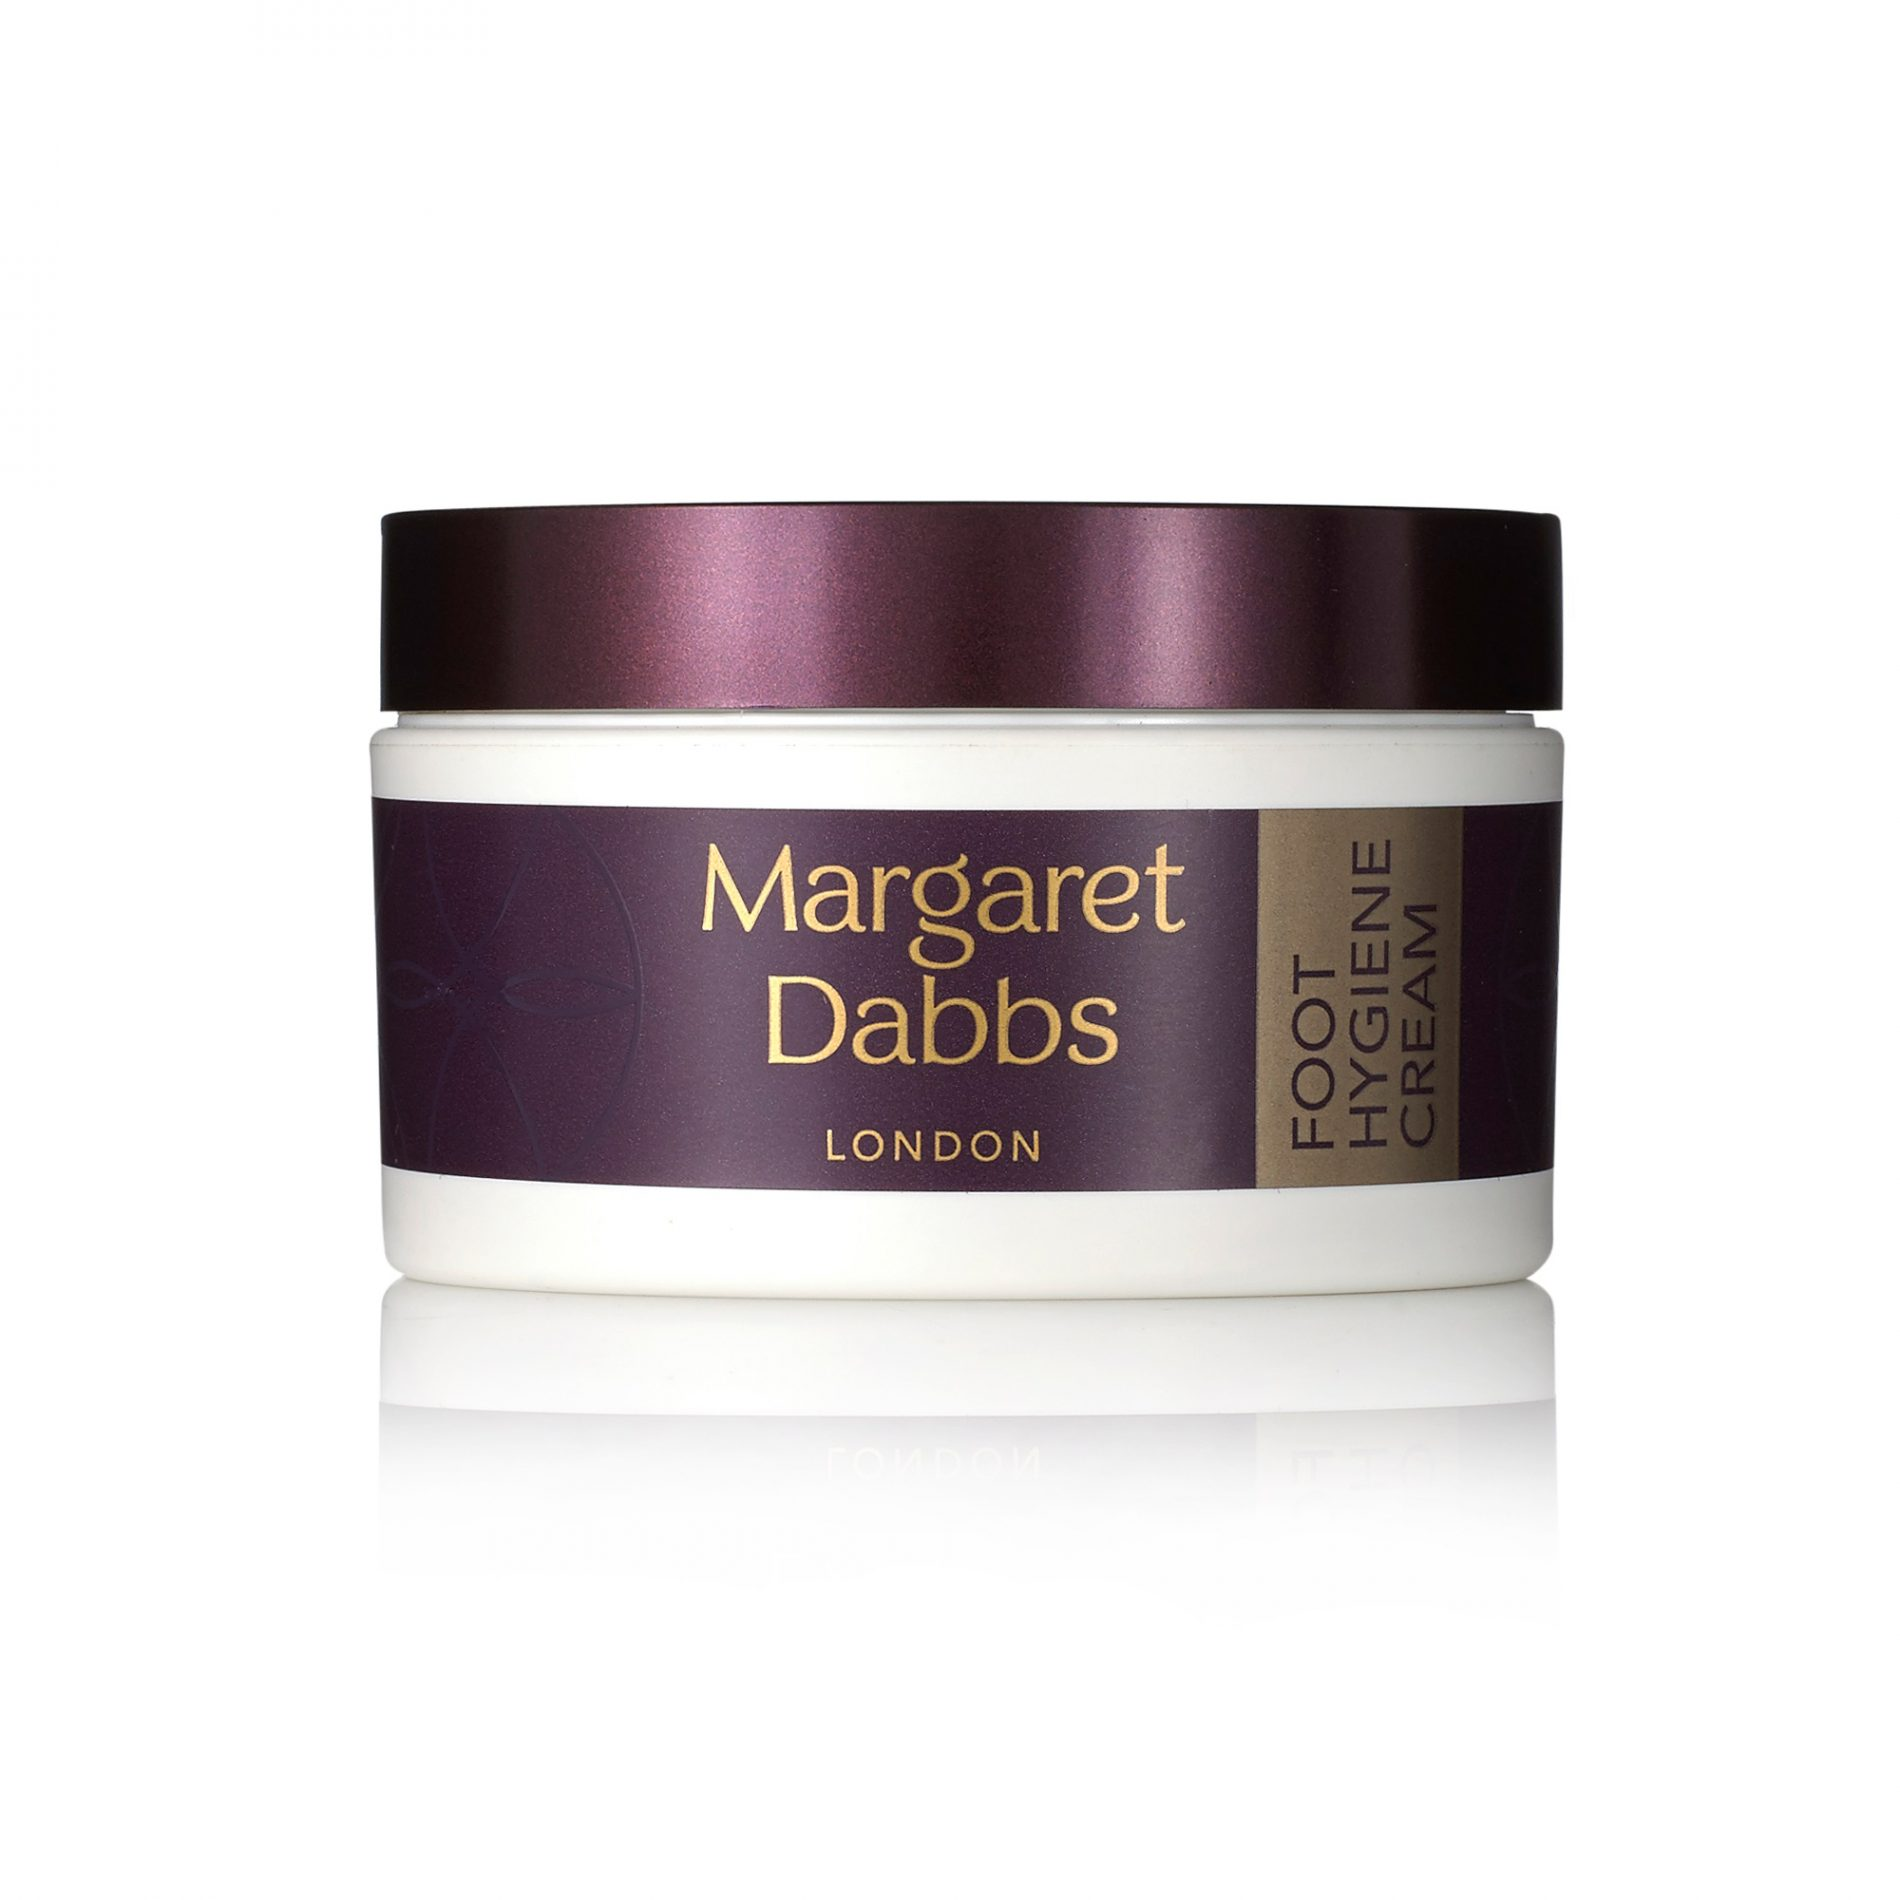 Shop Margaret Dabbs Foot Hygiene Cream